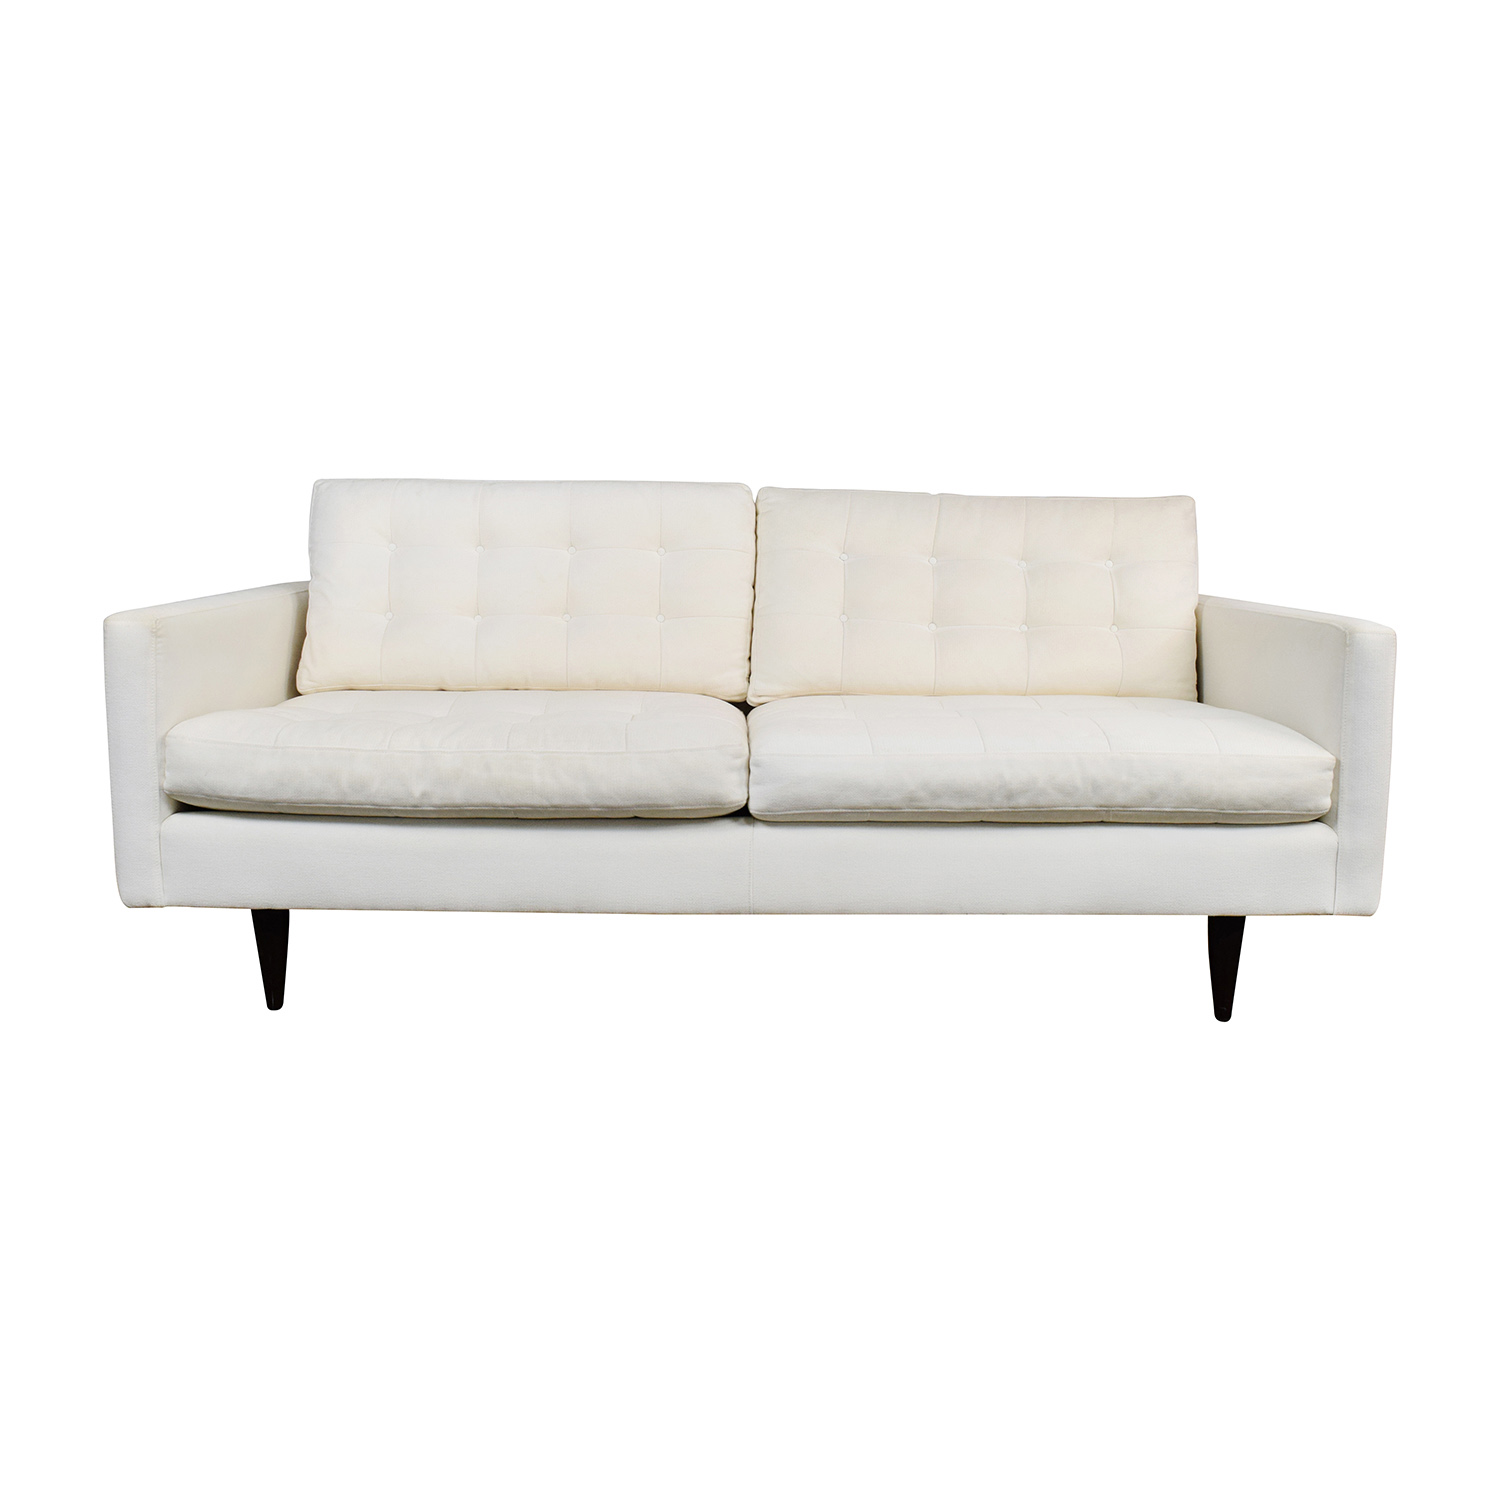 Crate and Barrel Apartment Sofa | Crate and Barrel Couch | Crate and Barrel Couch